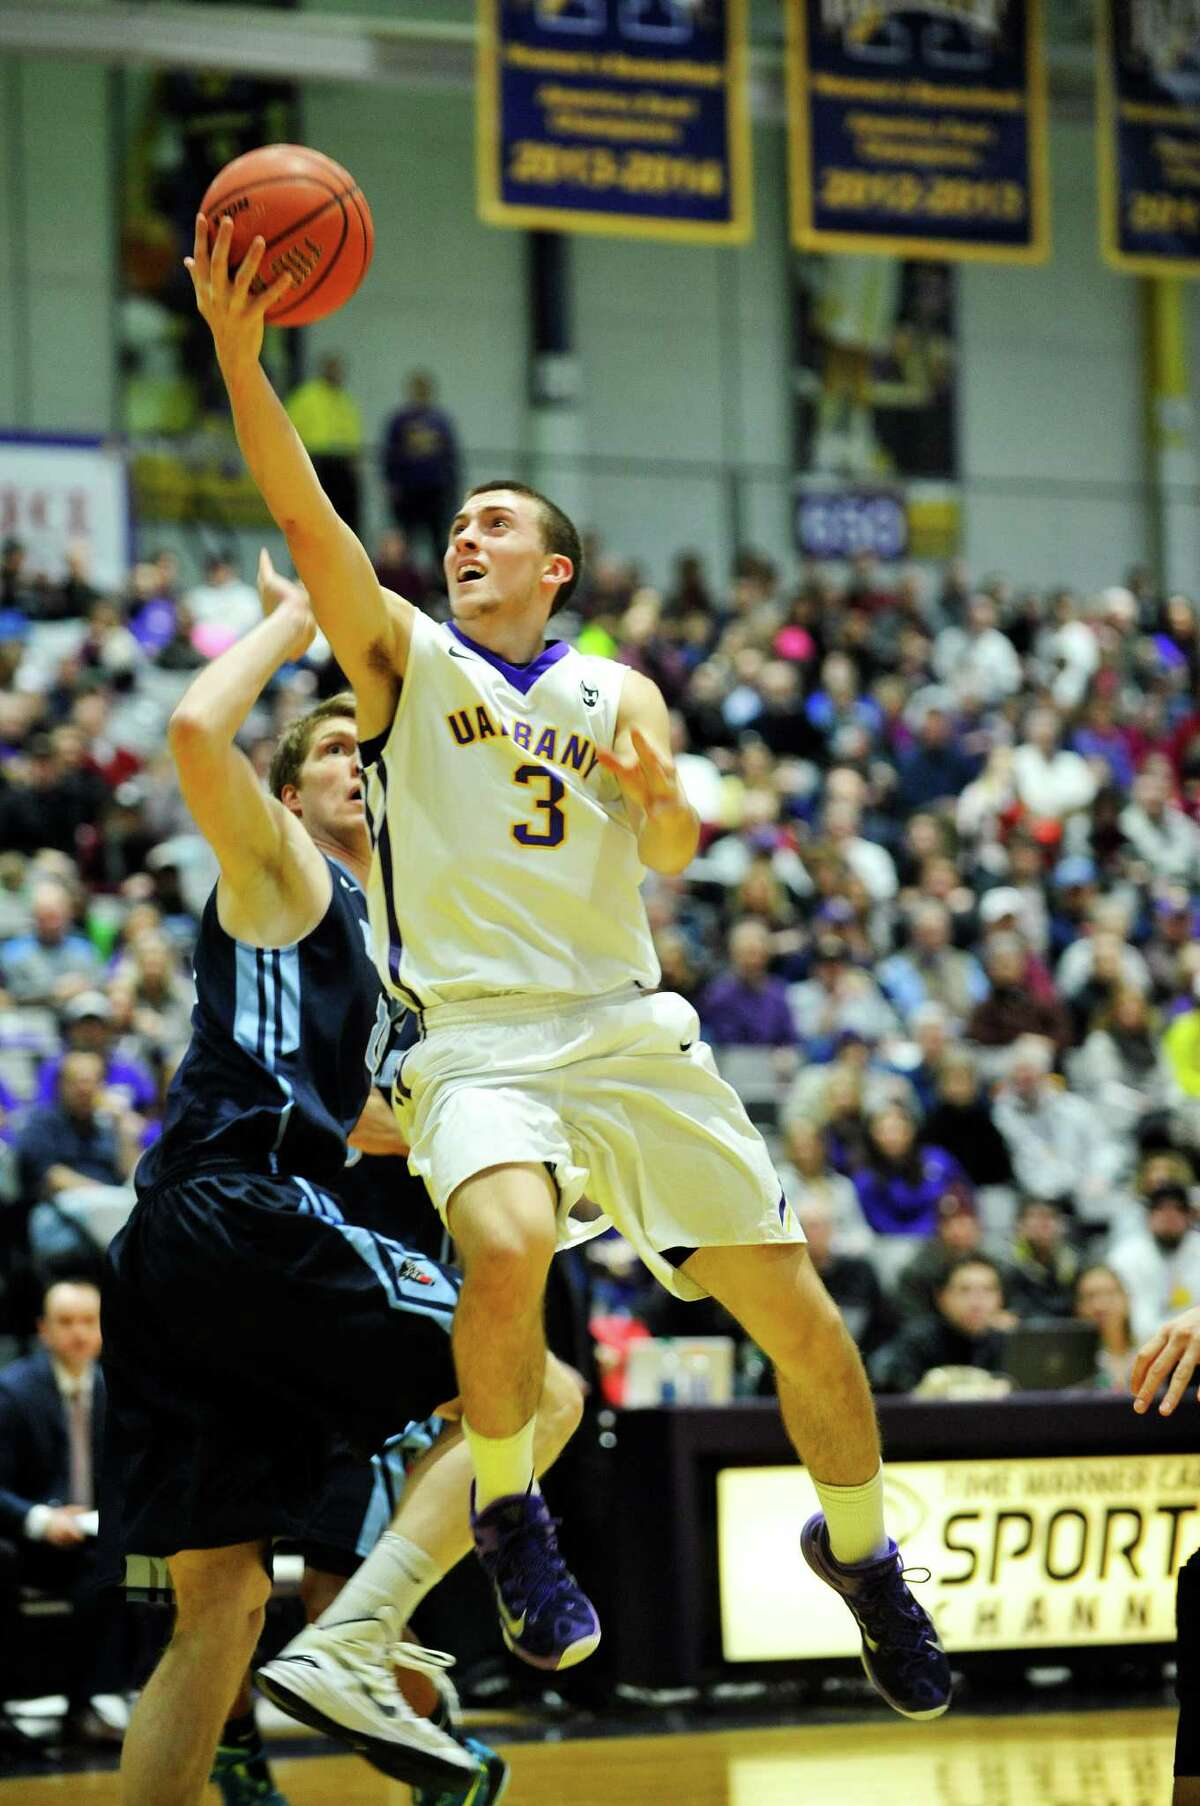 Joe Cremo of the UAlbany puts up a shot over a Maine player during their game on Sunday, Feb. 14, 2016, in Albany, N.Y. (Paul Buckowski / Times Union)